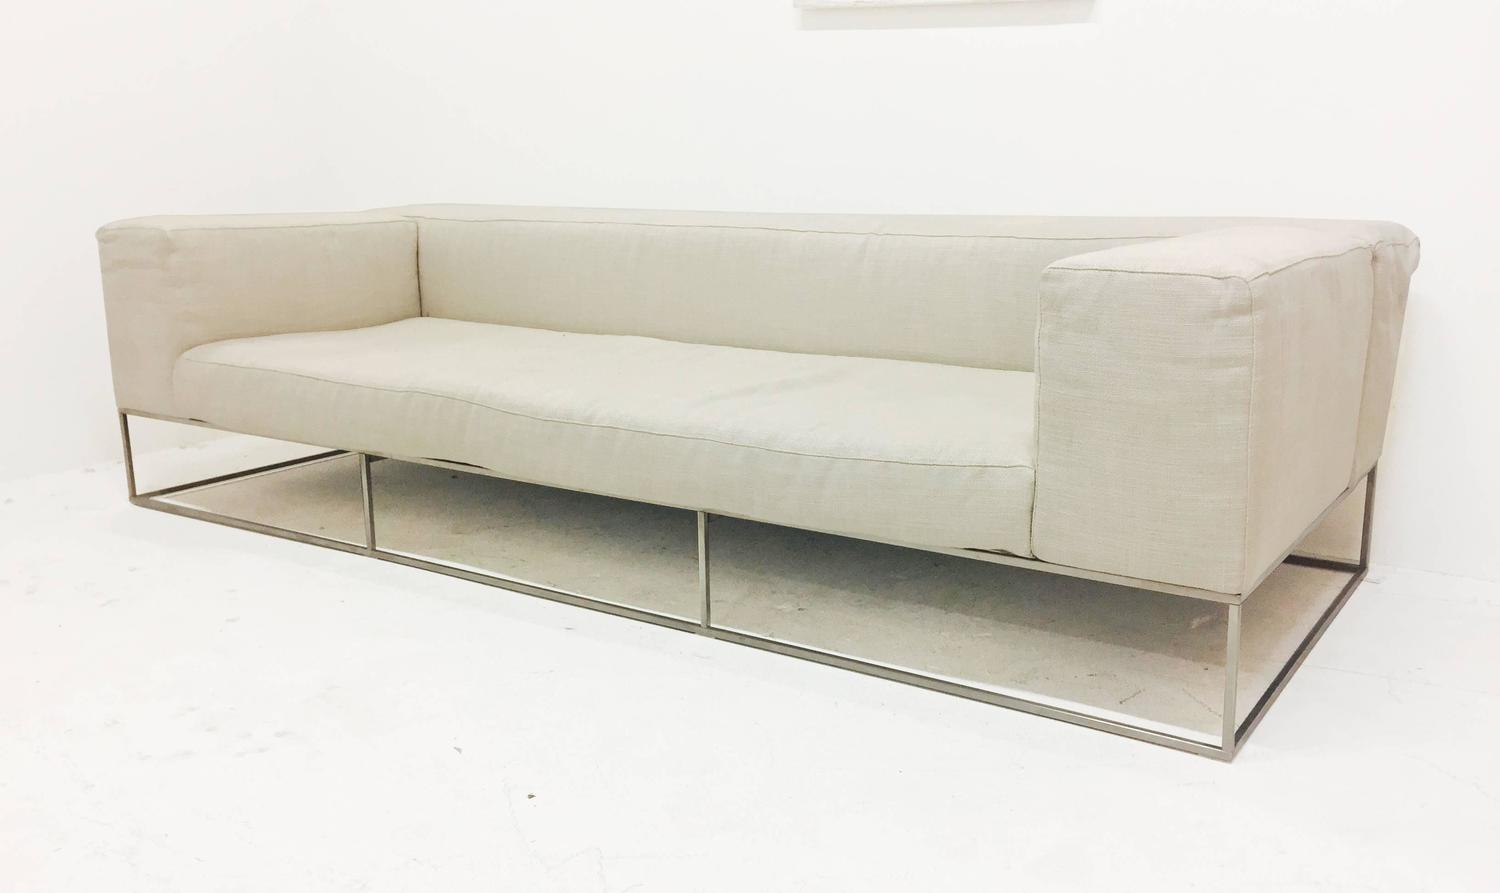 Piero Lissoni Modular Sofa Ile Club Sofa By Piero Lissoni For Living Divani